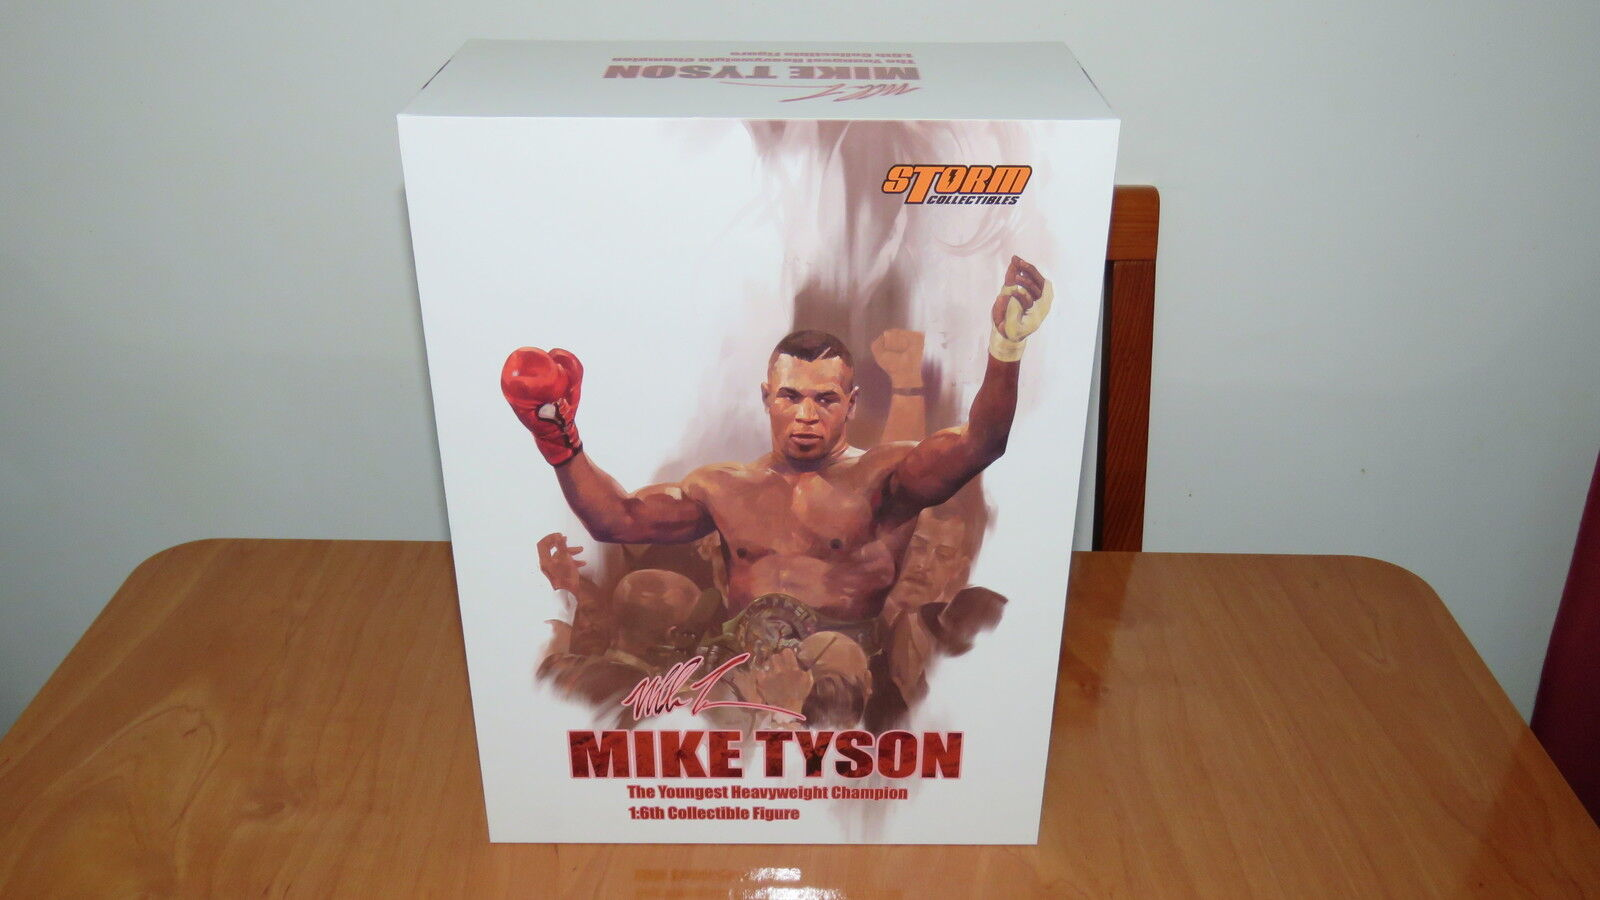 directo de fábrica Storm MIKE TYSON Youngest Youngest Youngest Heavyweight Champion 1 6 (no hot Juguetes) Empty Box  ventas directas de fábrica